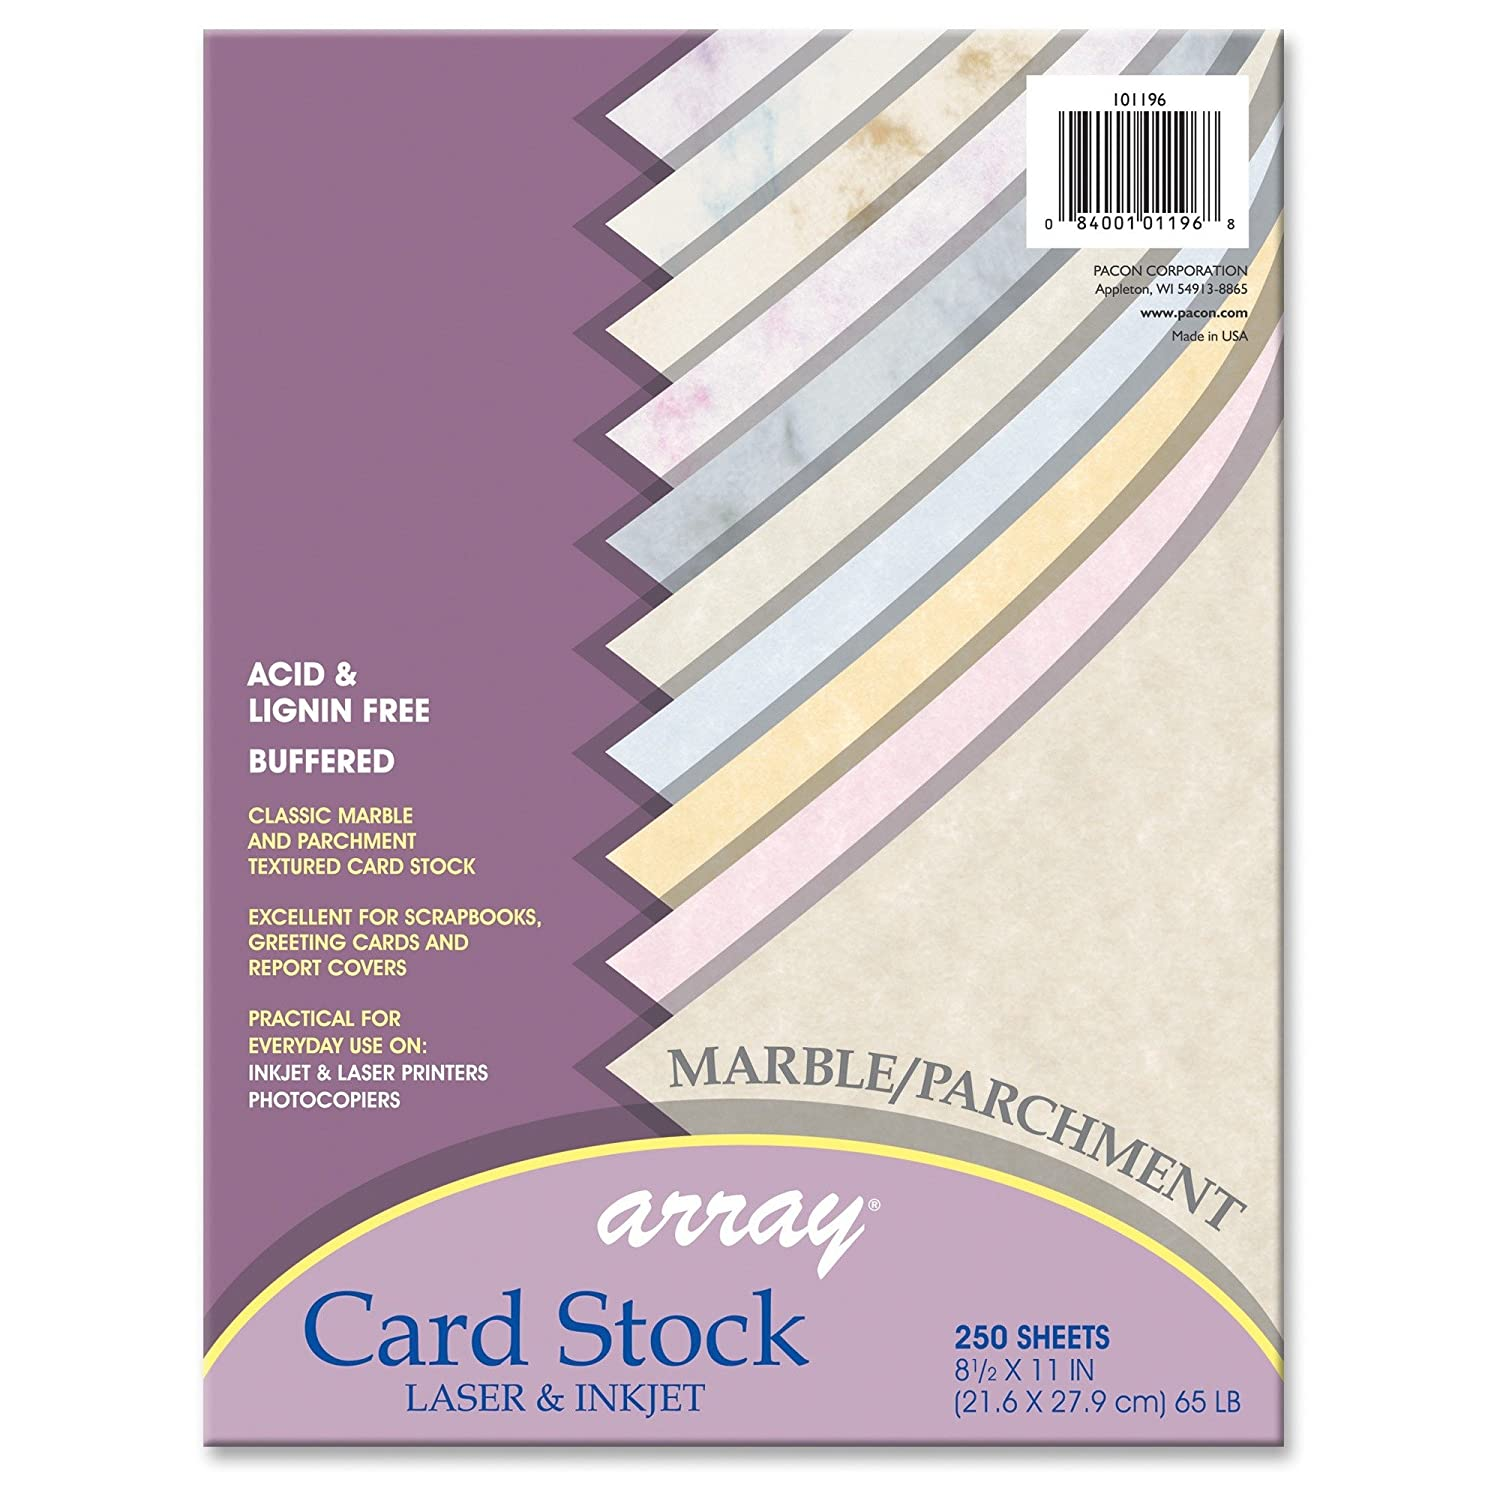 Multi colored cardstock paper - Amazon Com Pacon Card Stock Assortment 8 1 2 Inches By 11 Inches Mable Parchment Assortment 250 Sheets 101196 Cardstock Papers Office Products